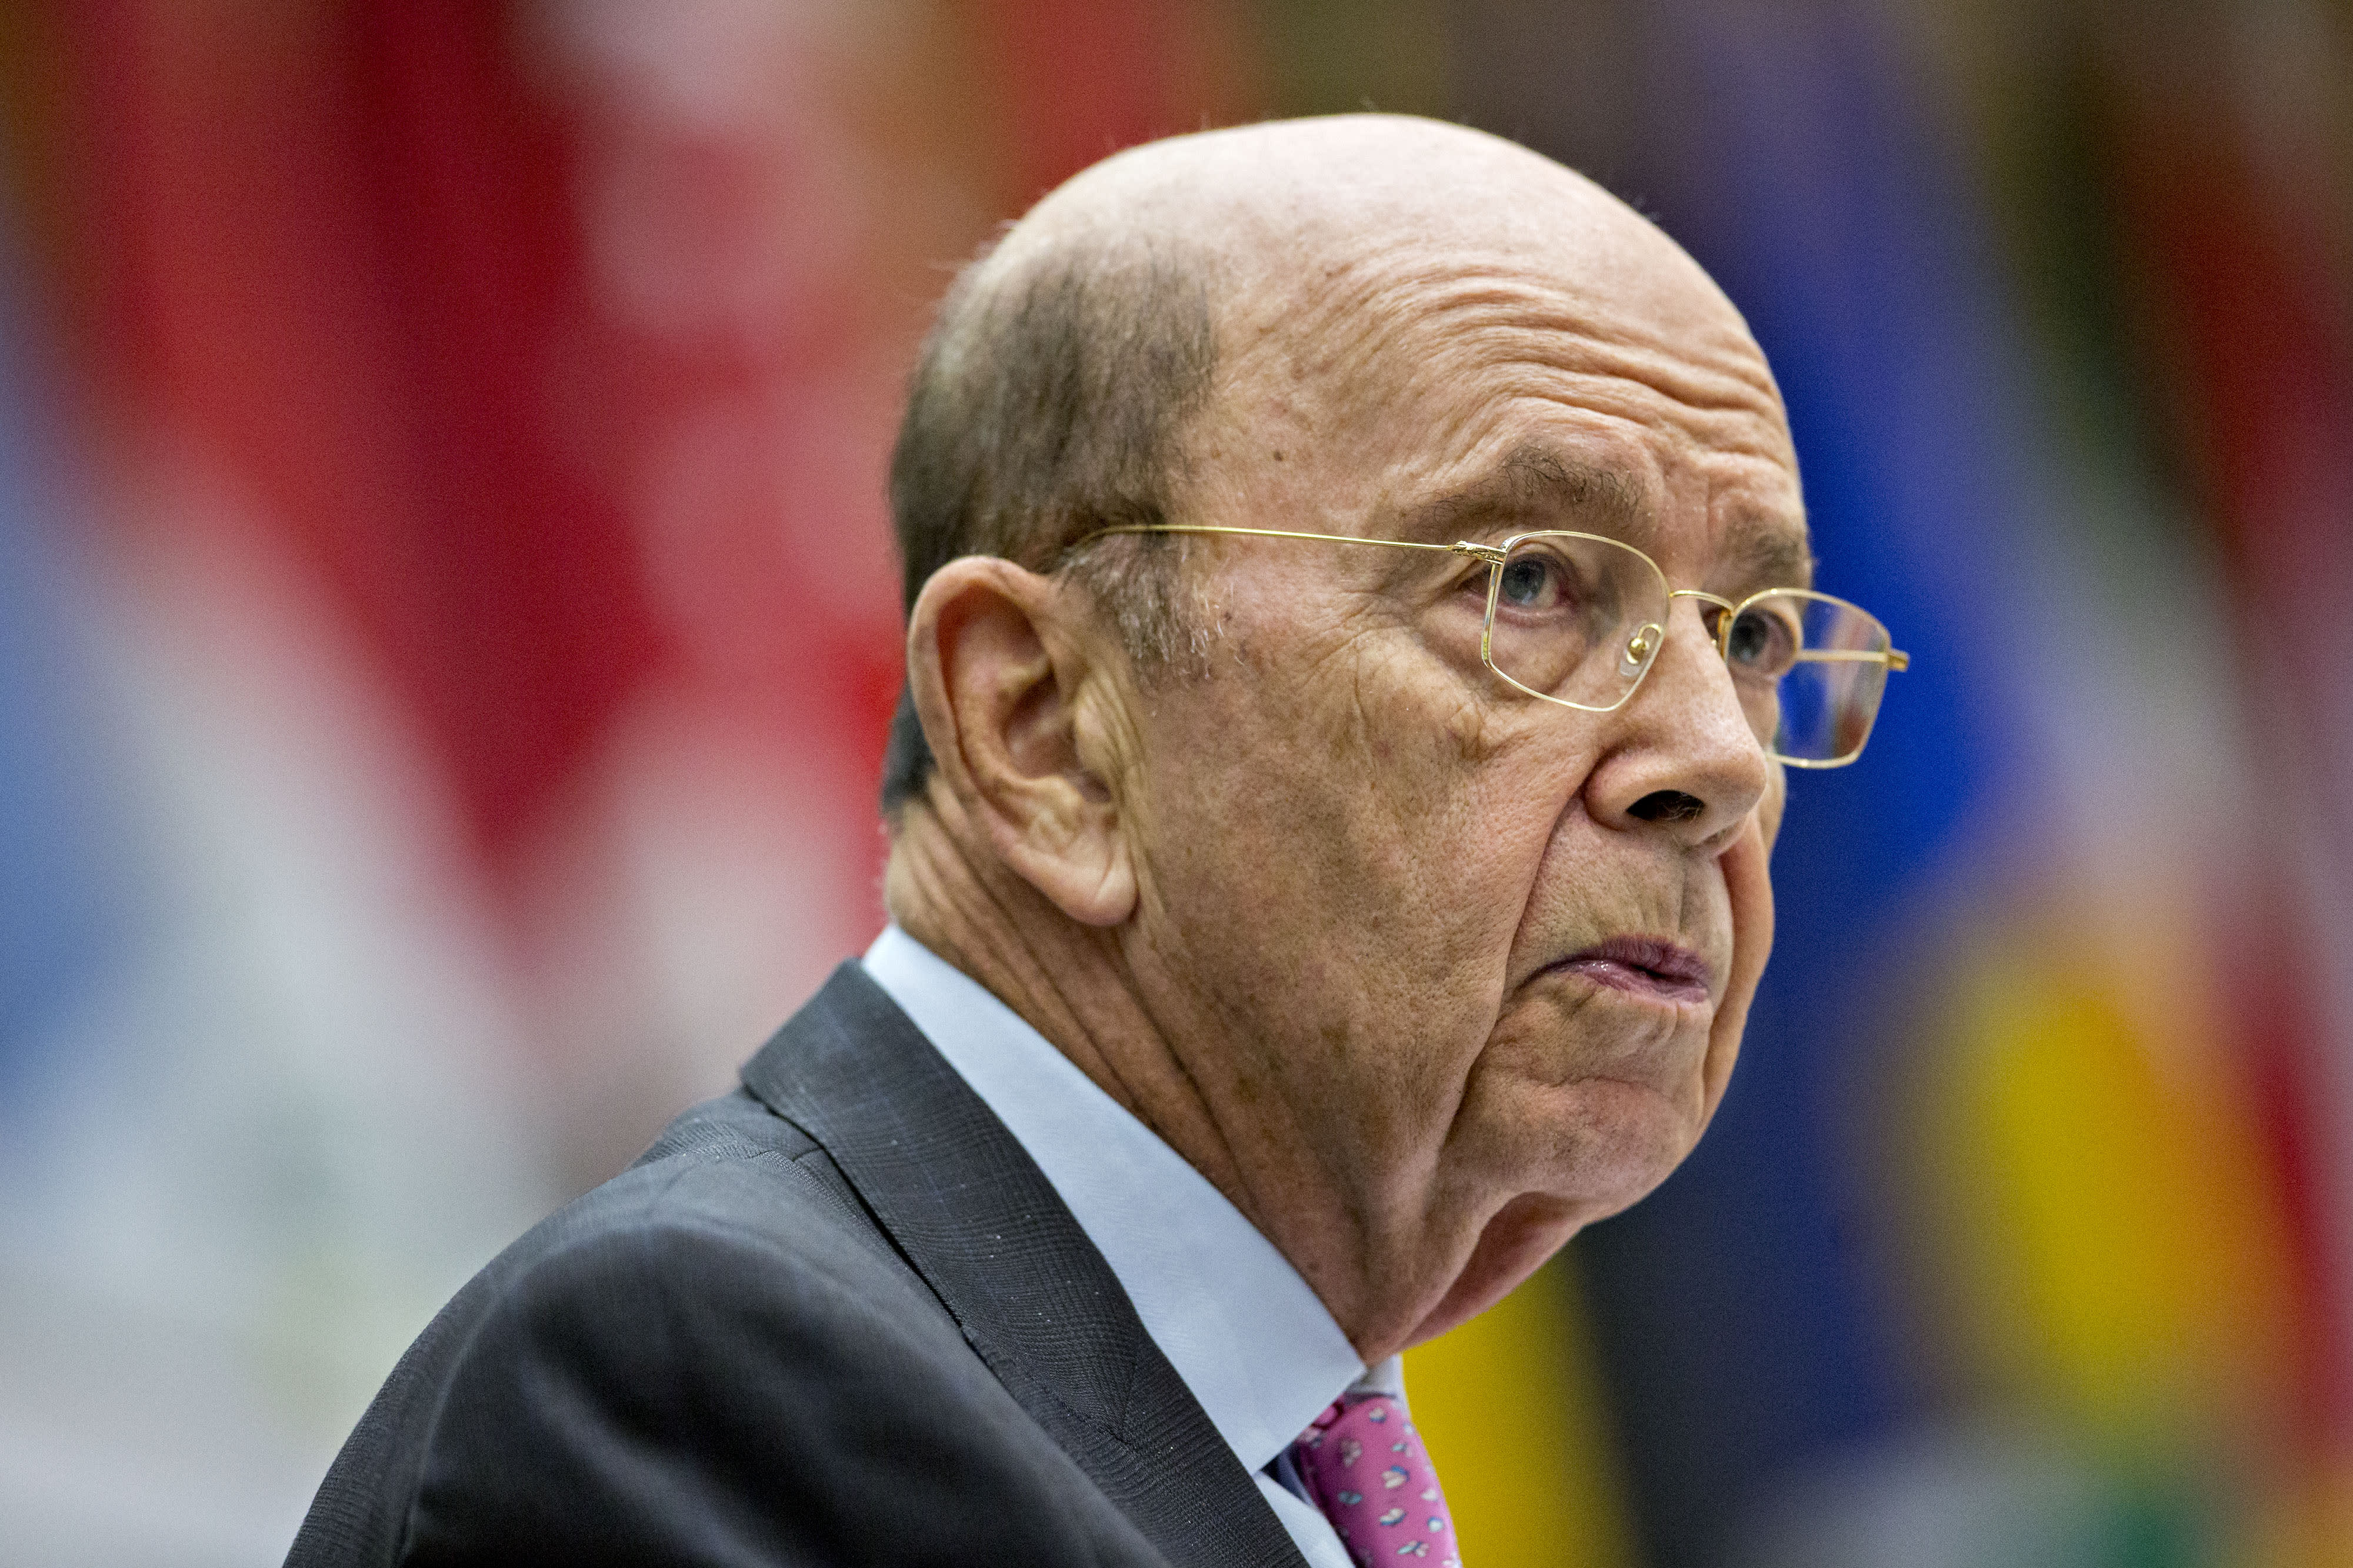 Wilbur Ross, U.S. commerce secretary, speaks during the 47th annual Washington Conference on the Americas at the U.S Department of State in Washington, D.C., U.S., on Tuesday, May 9, 2017.